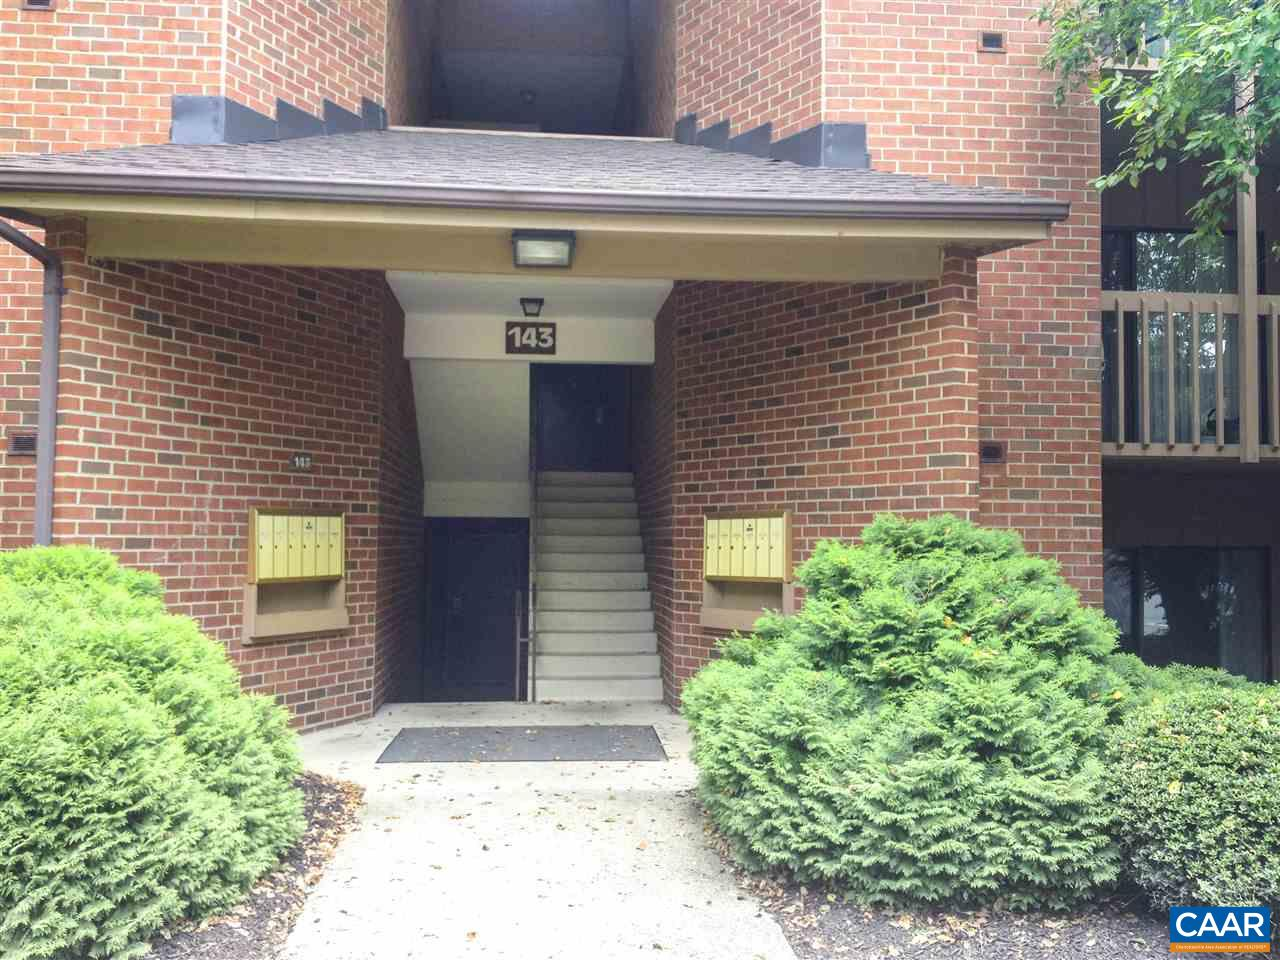 1 bedroom/1 bathroom condo on the 3rd floor.This unit is currently rented for $954 per month with a $100 utility fee through 6/30/2019.